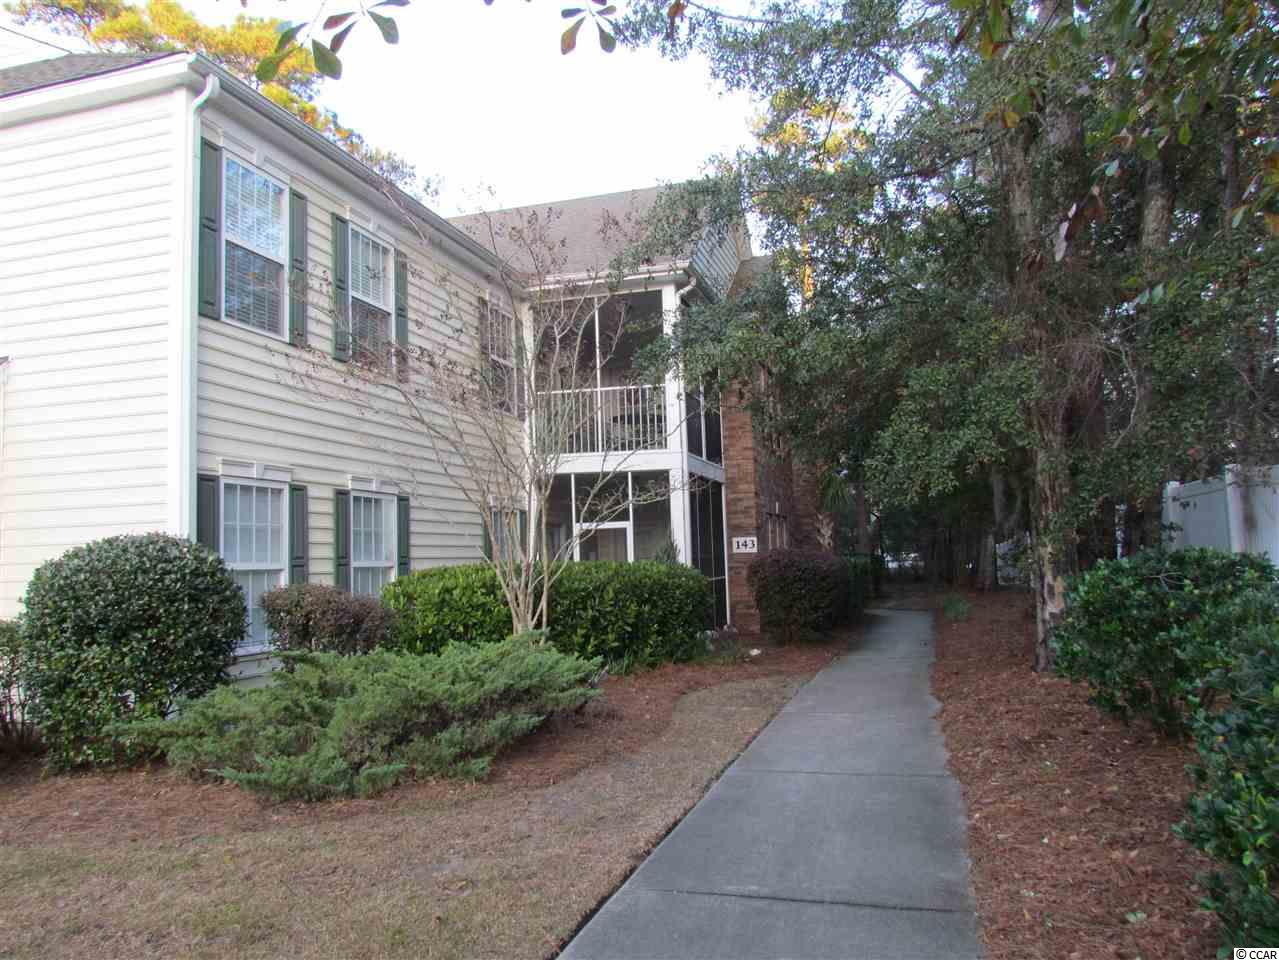 This upstairs 3 bedroom 2 full bath condo is located in the heart of Pawleys Island and is close to everything.  This unit is not only easy to see but has been well maintained and is move in ready.  If you have been looking for the perfect spot to park your flip flops come take a look.